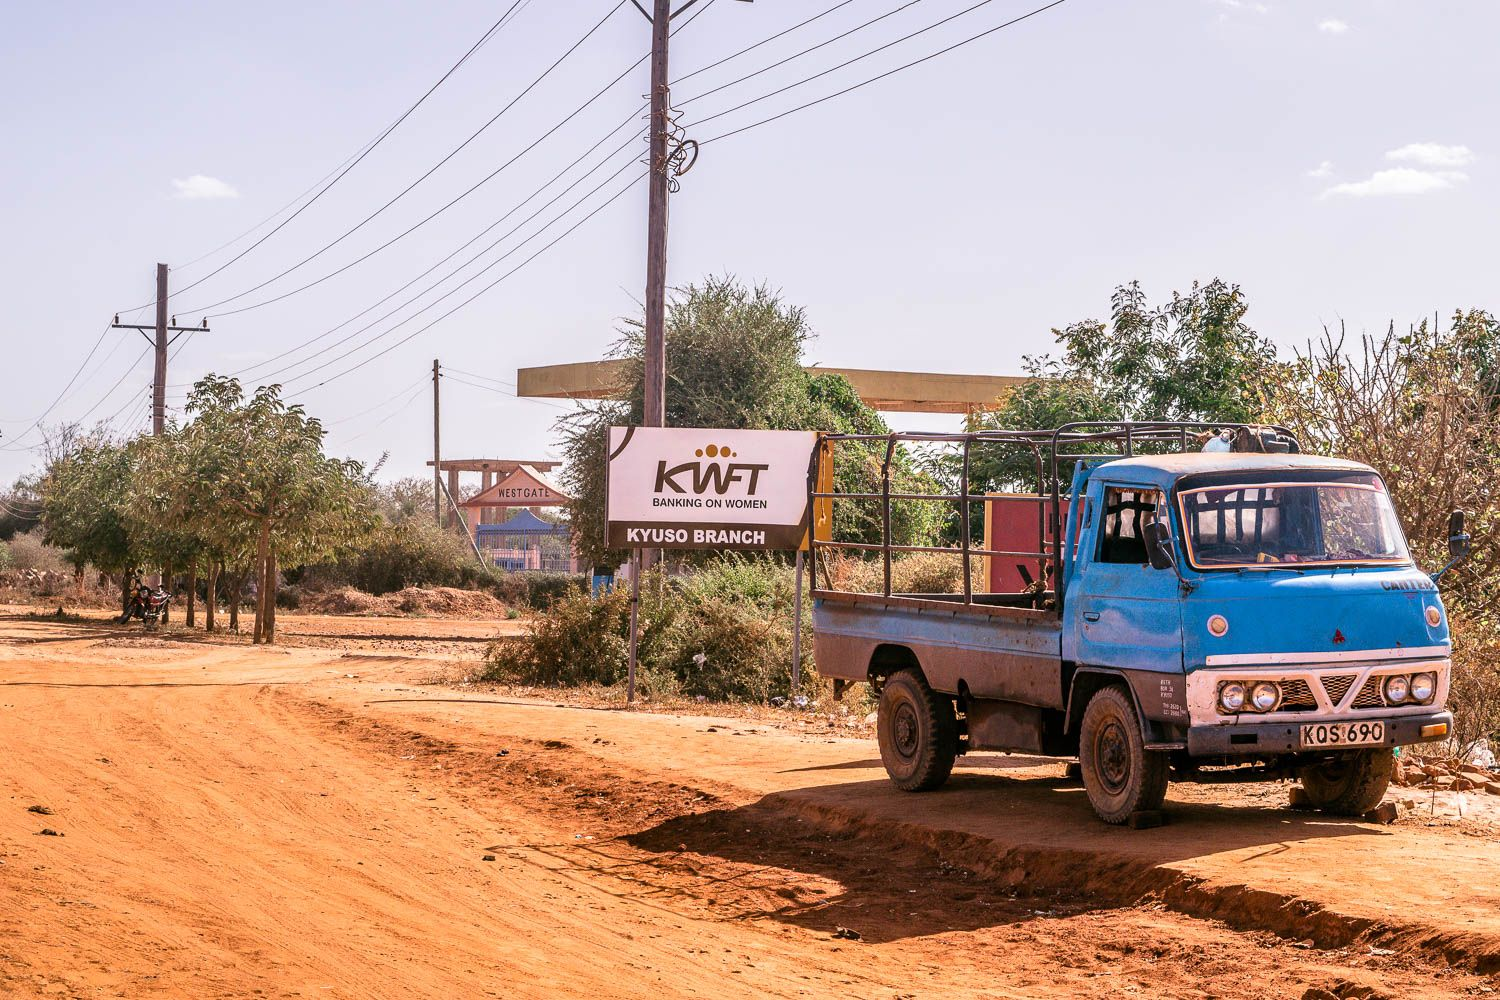 A Lorry Parks Near A Kwft Sign In Kyuso, A Town In Kitui